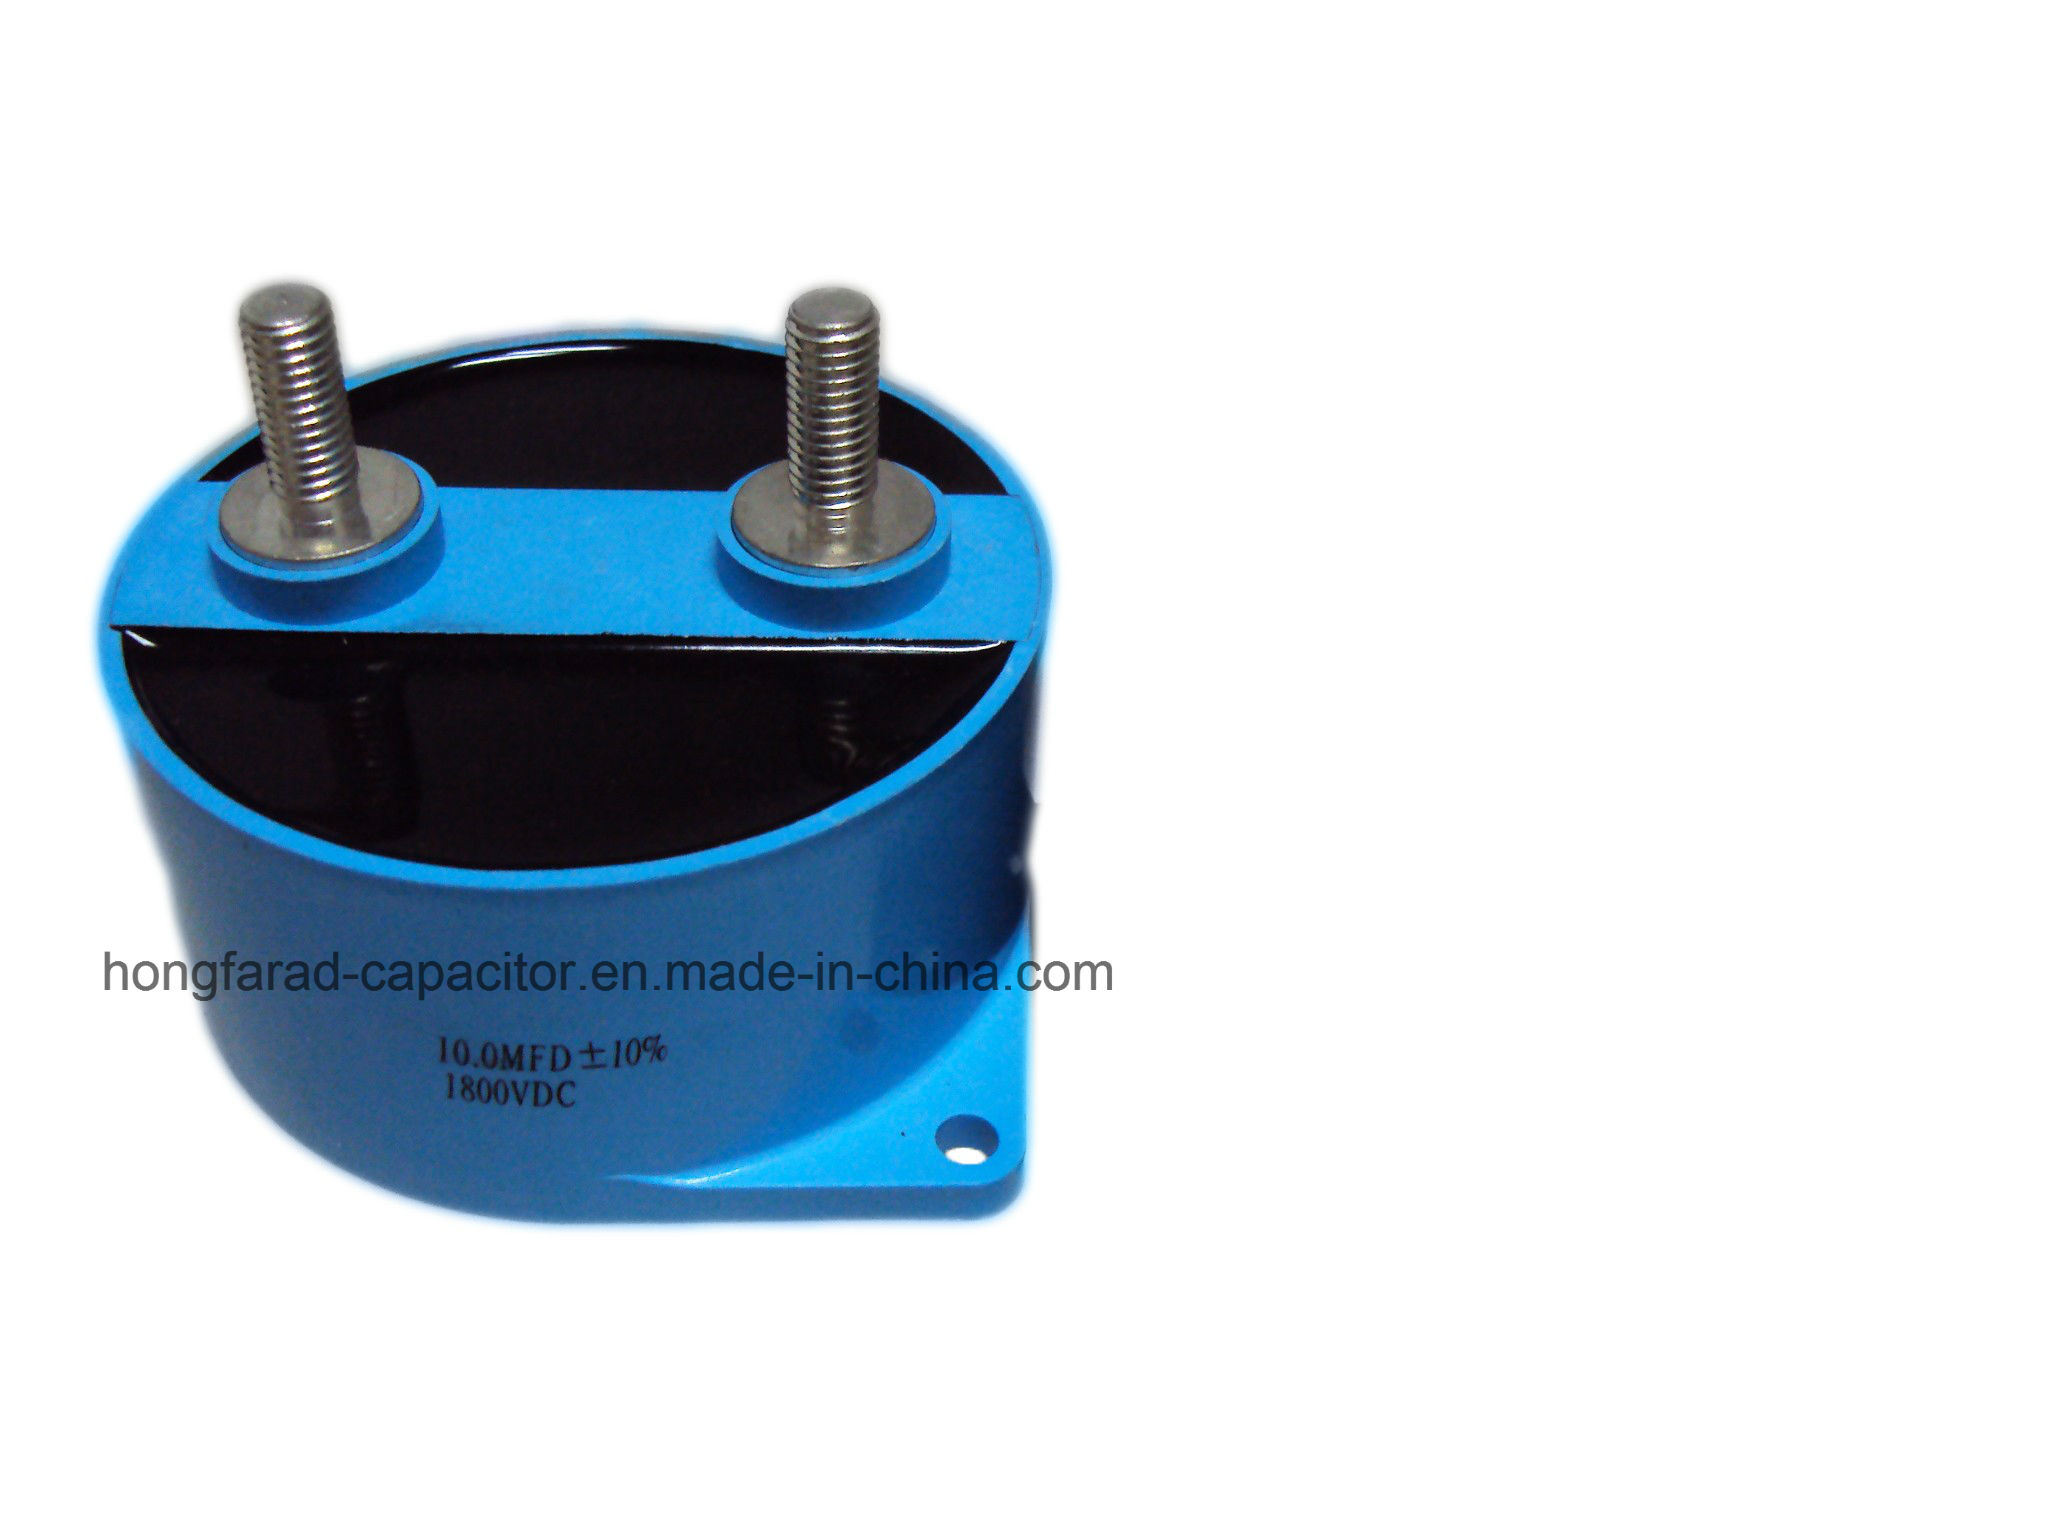 DPA DC Link Power Capacitor for Rectifier-Inverter System